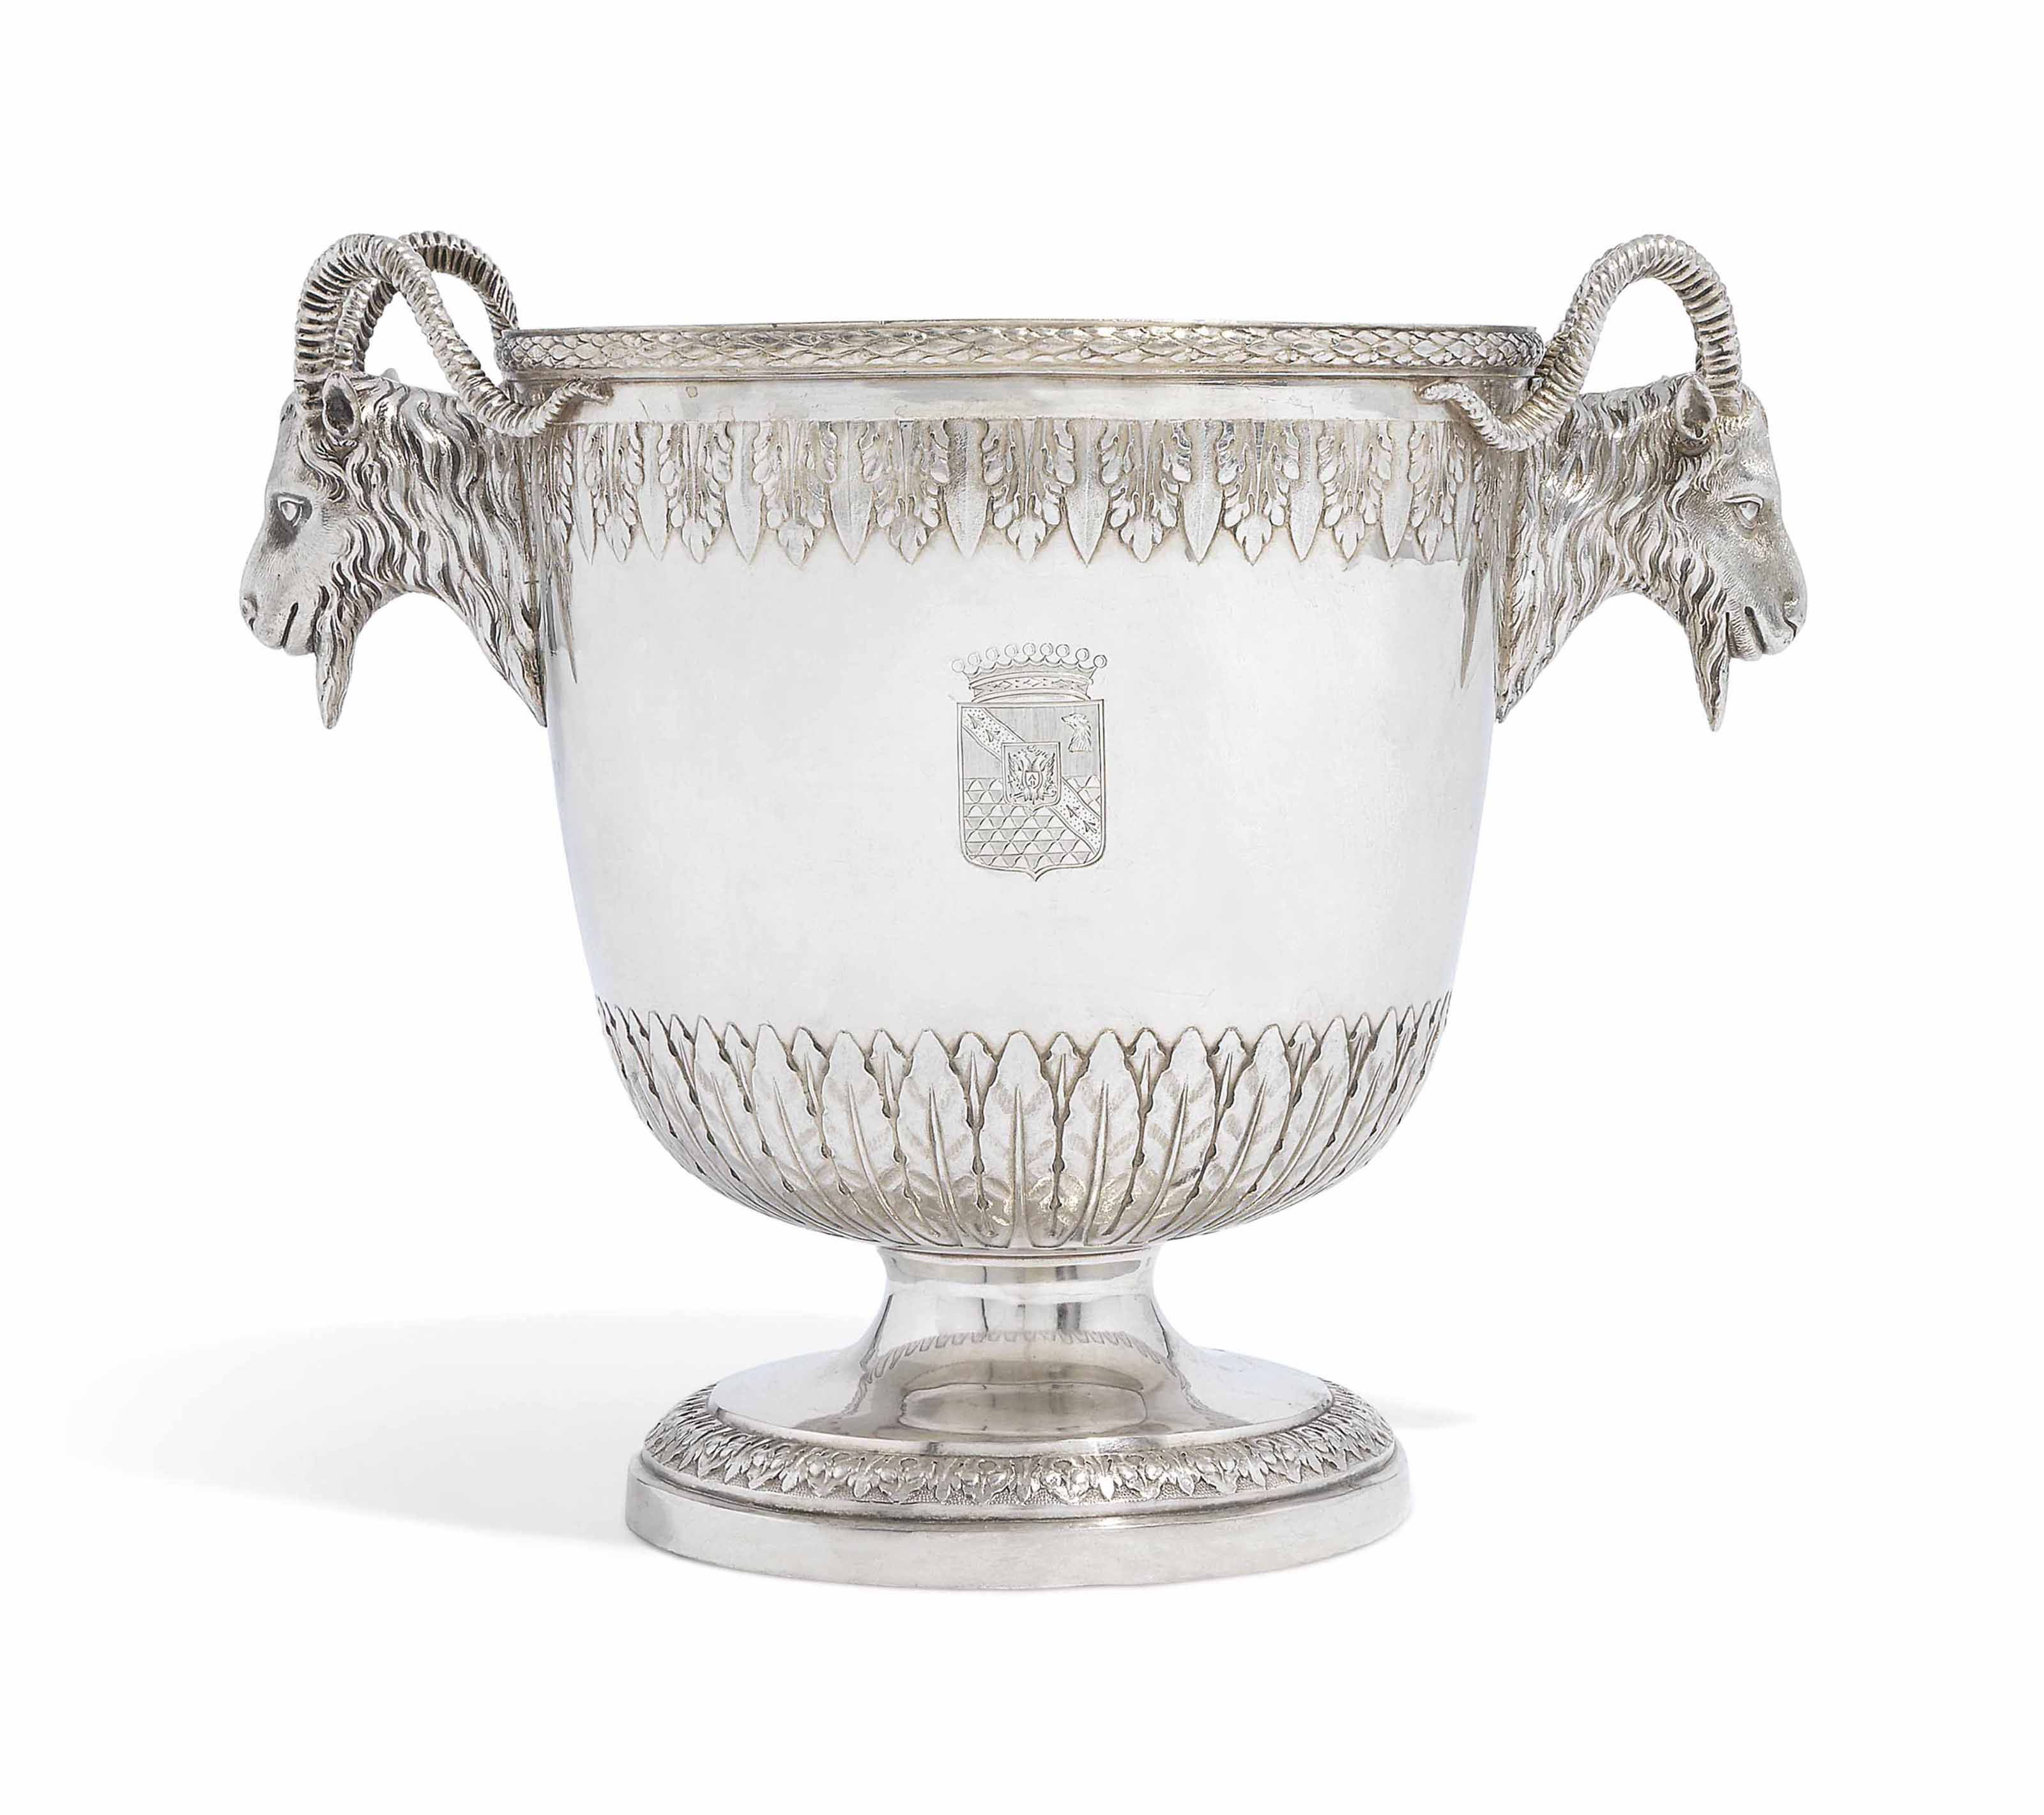 A GERMAN SILVER WINE-COOLER